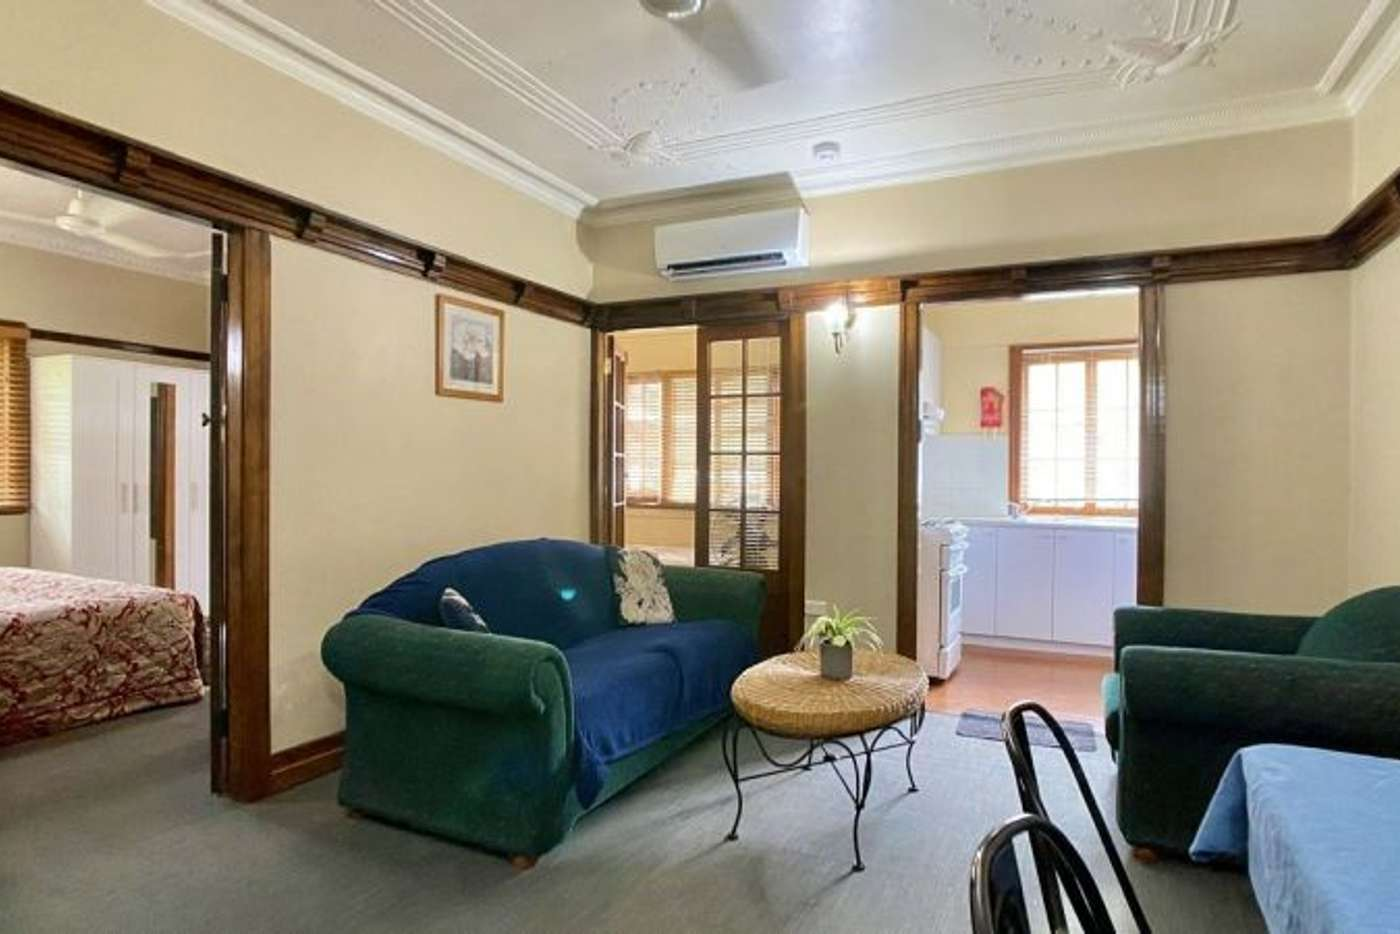 Main view of Homely apartment listing, 16/45 Phillips Street, Spring Hill QLD 4000